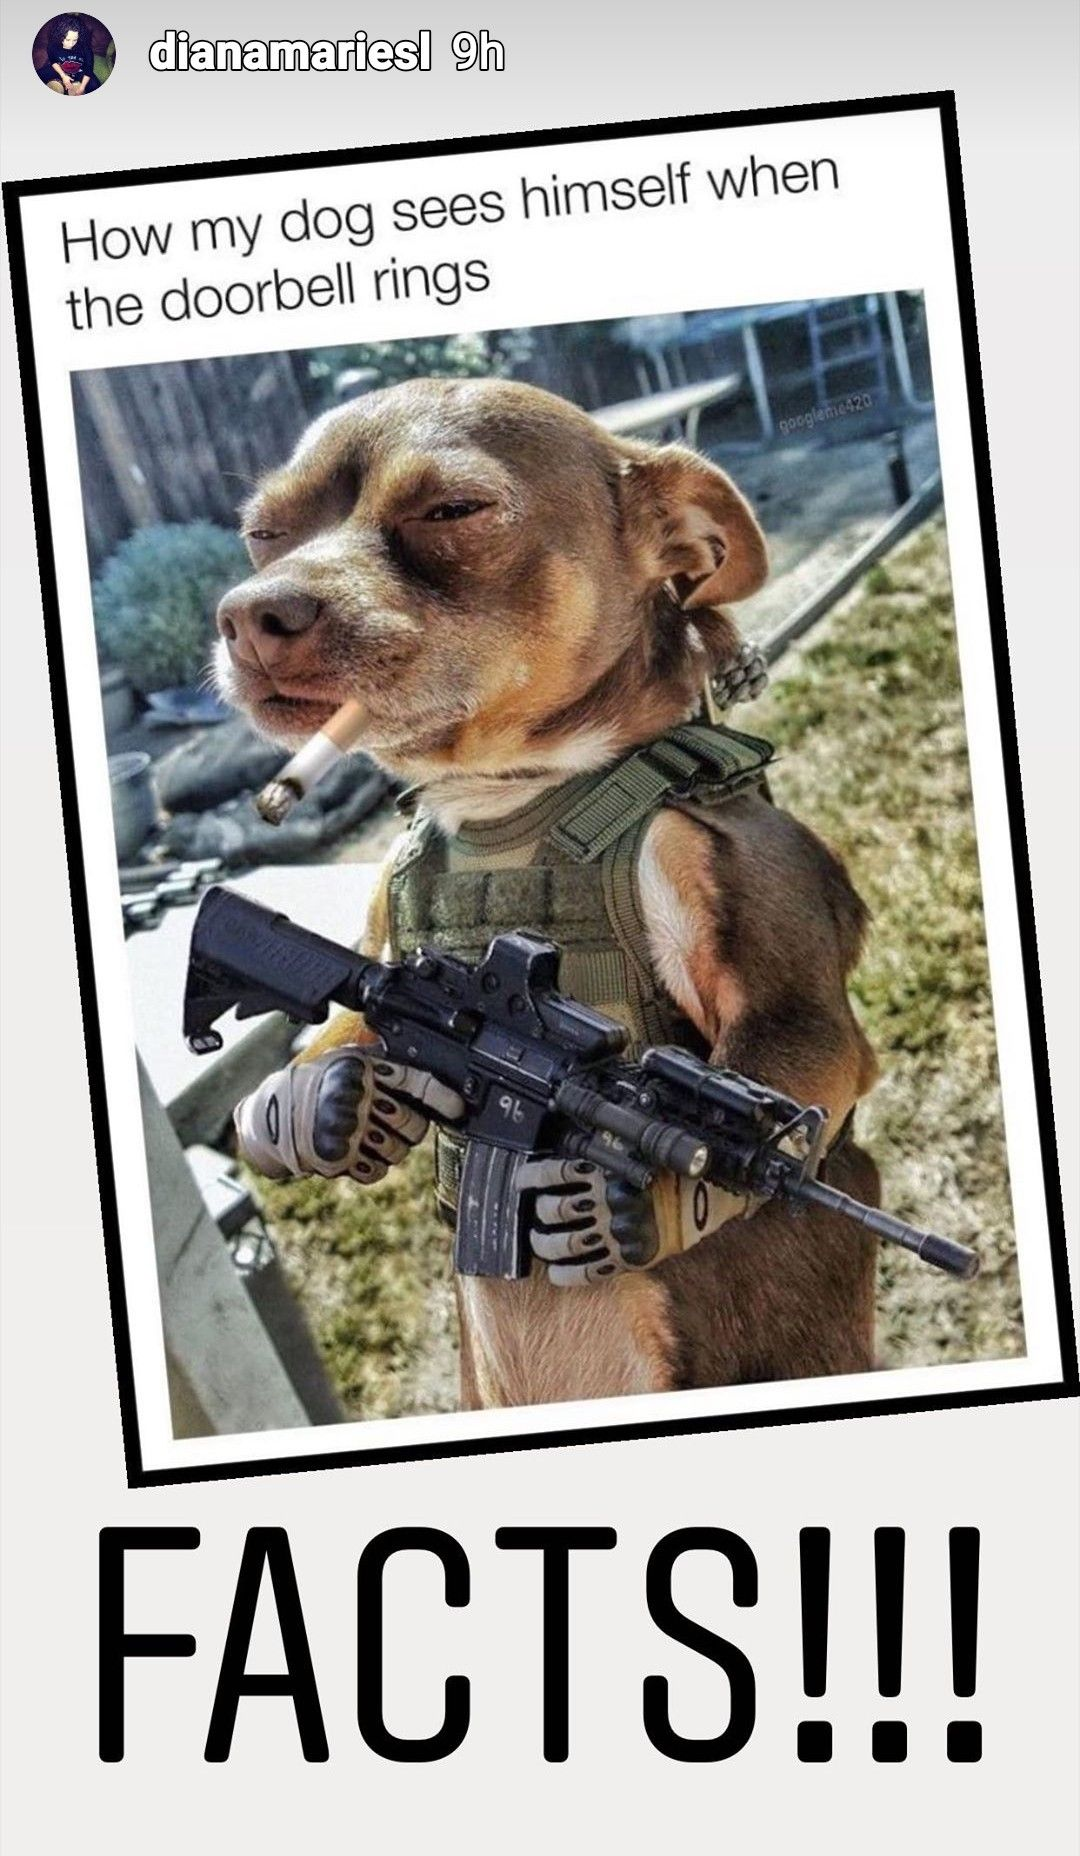 Pin by CoachMeDave on HUMOR in 2020 (With images) Dogs